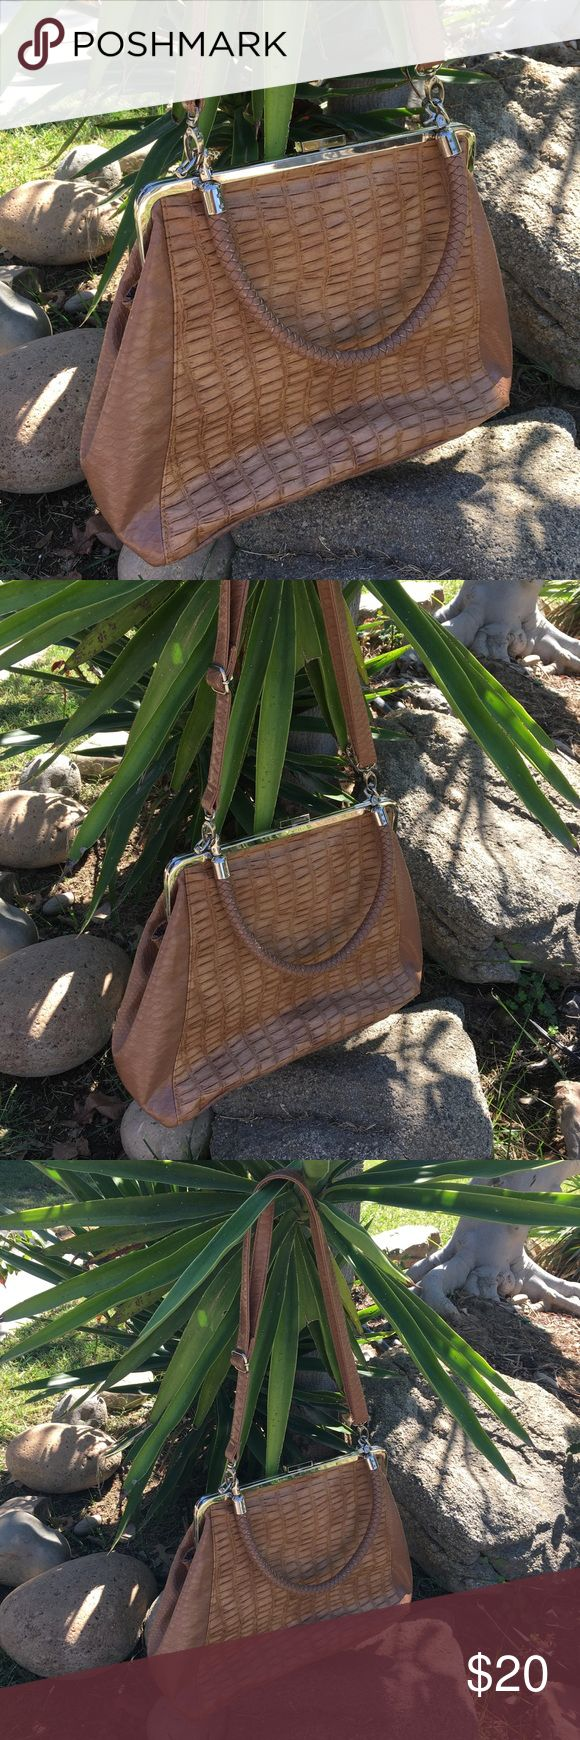 🍃Gorgeous Snake Skin Purse🍃🌸👜🌸🍃 🍃Gorgeous Snake Skin Camel Purse🍃🌸👜🌸🍃 I bought it from a wonderful Posher and I love it but it ended up being too big for me. It's a beautiful color, has Snake Skin look to it, very roomy and clean inside. It has a long adjustable strap as well as forearm strap. It's Vintage clasp closure makes the look!! It won't last long!🌸🍃 Expressions Inc Bags Shoulder Bags